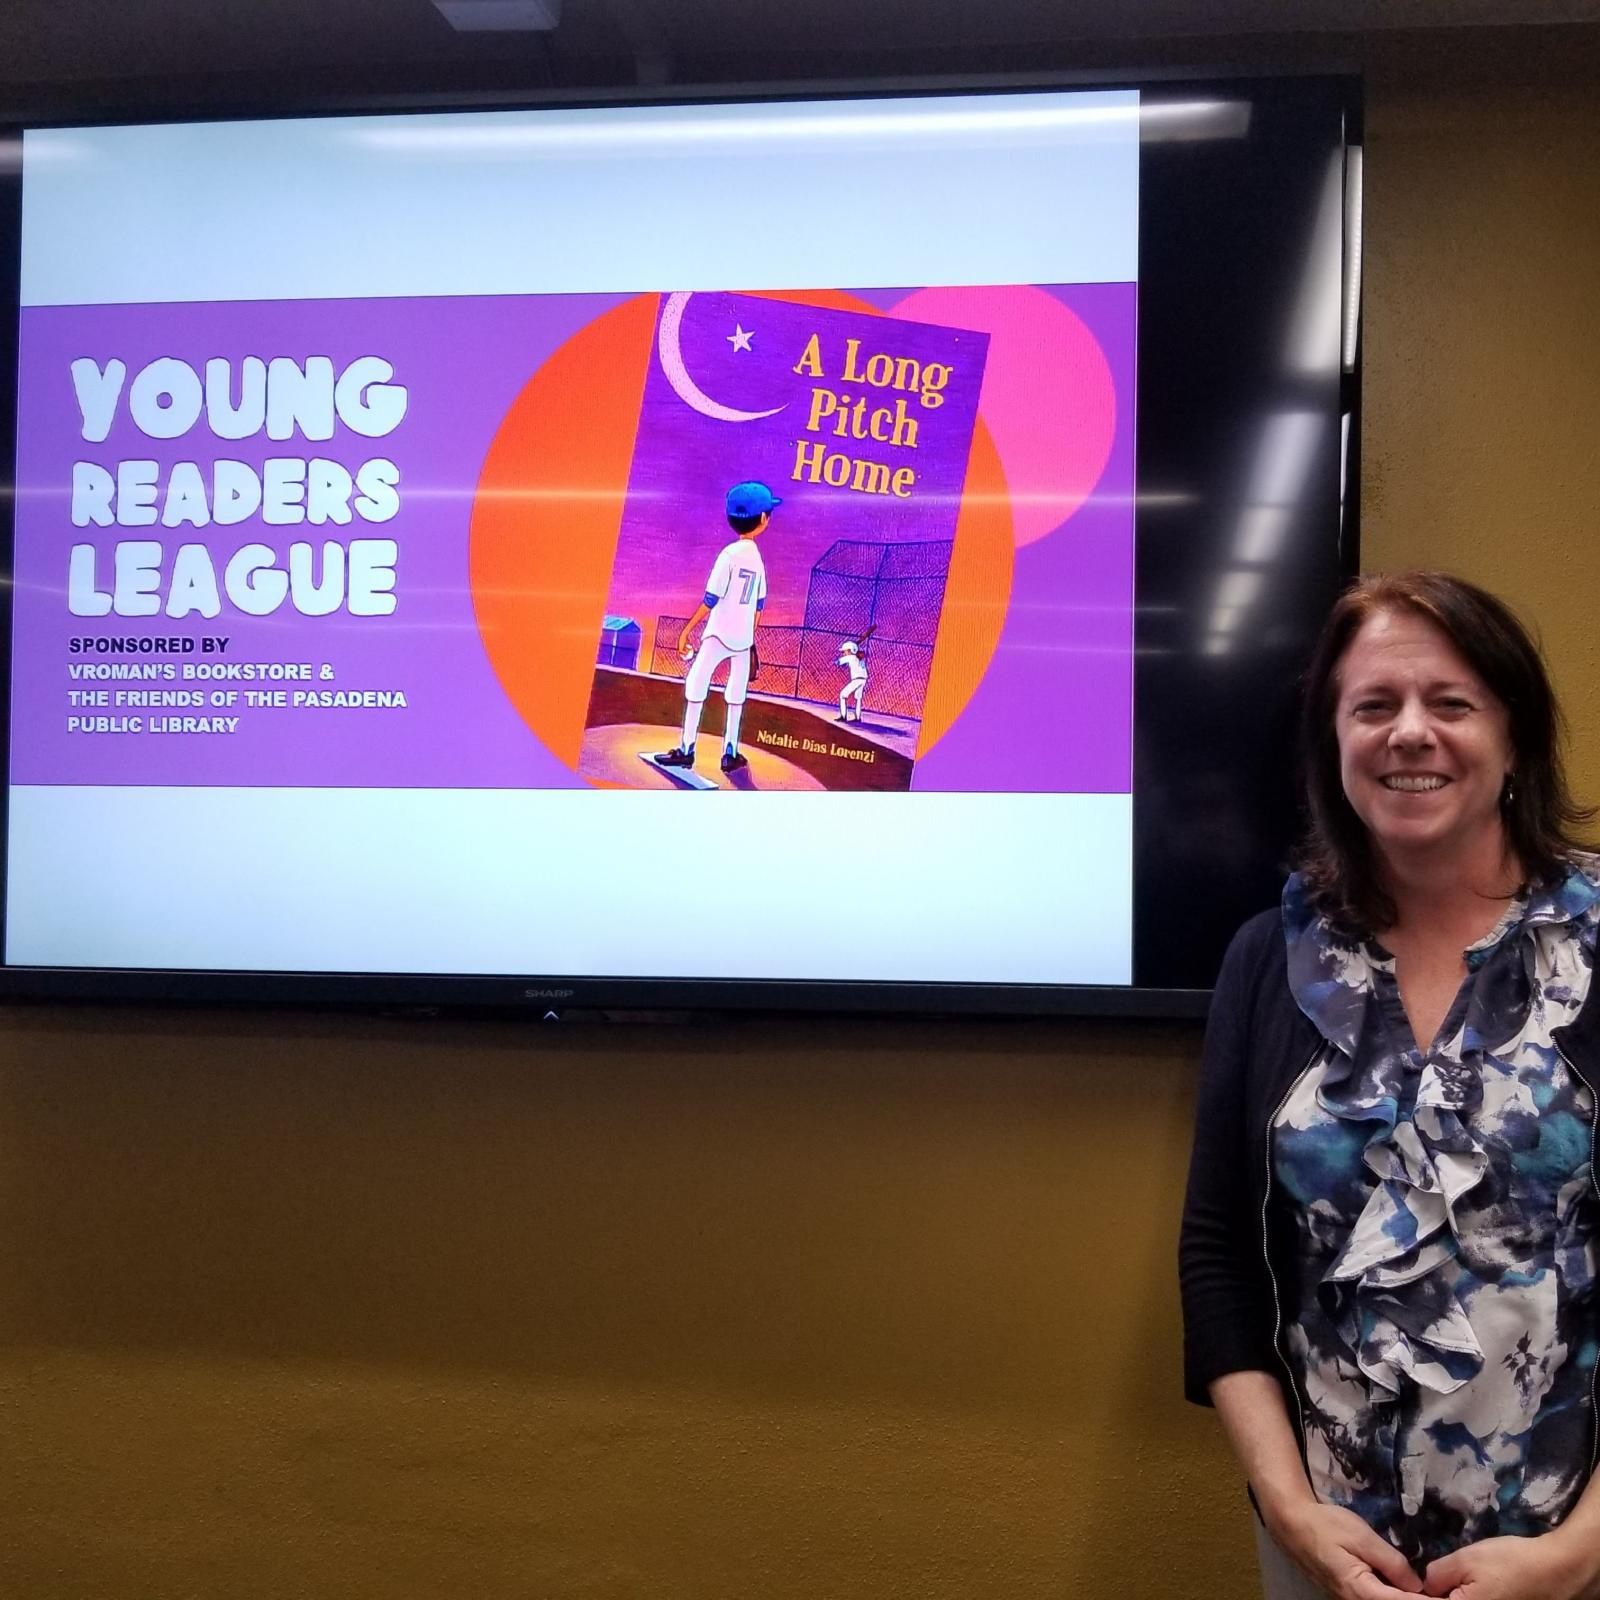 Young Readers League